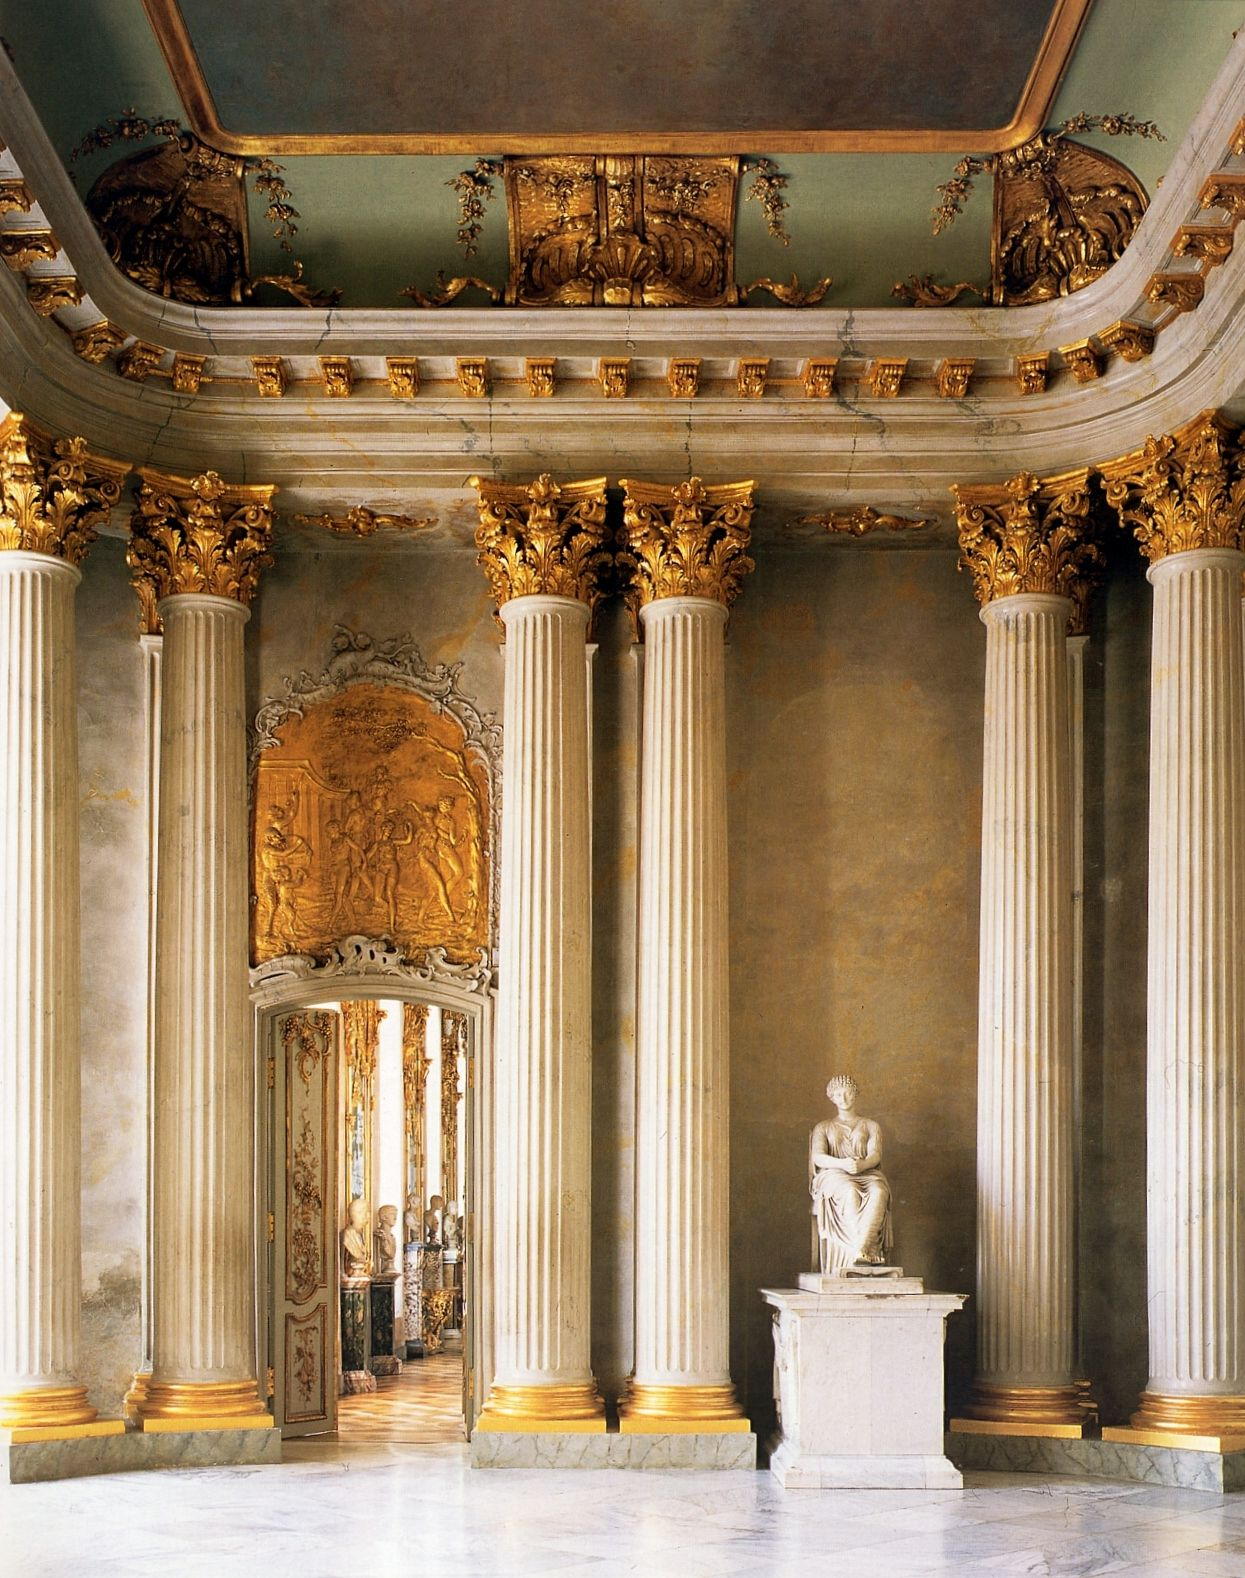 Schloss Sanssouci Potsdam Traditional InteriorClassic InteriorPalace InteriorAmazing ArchitectureGerman